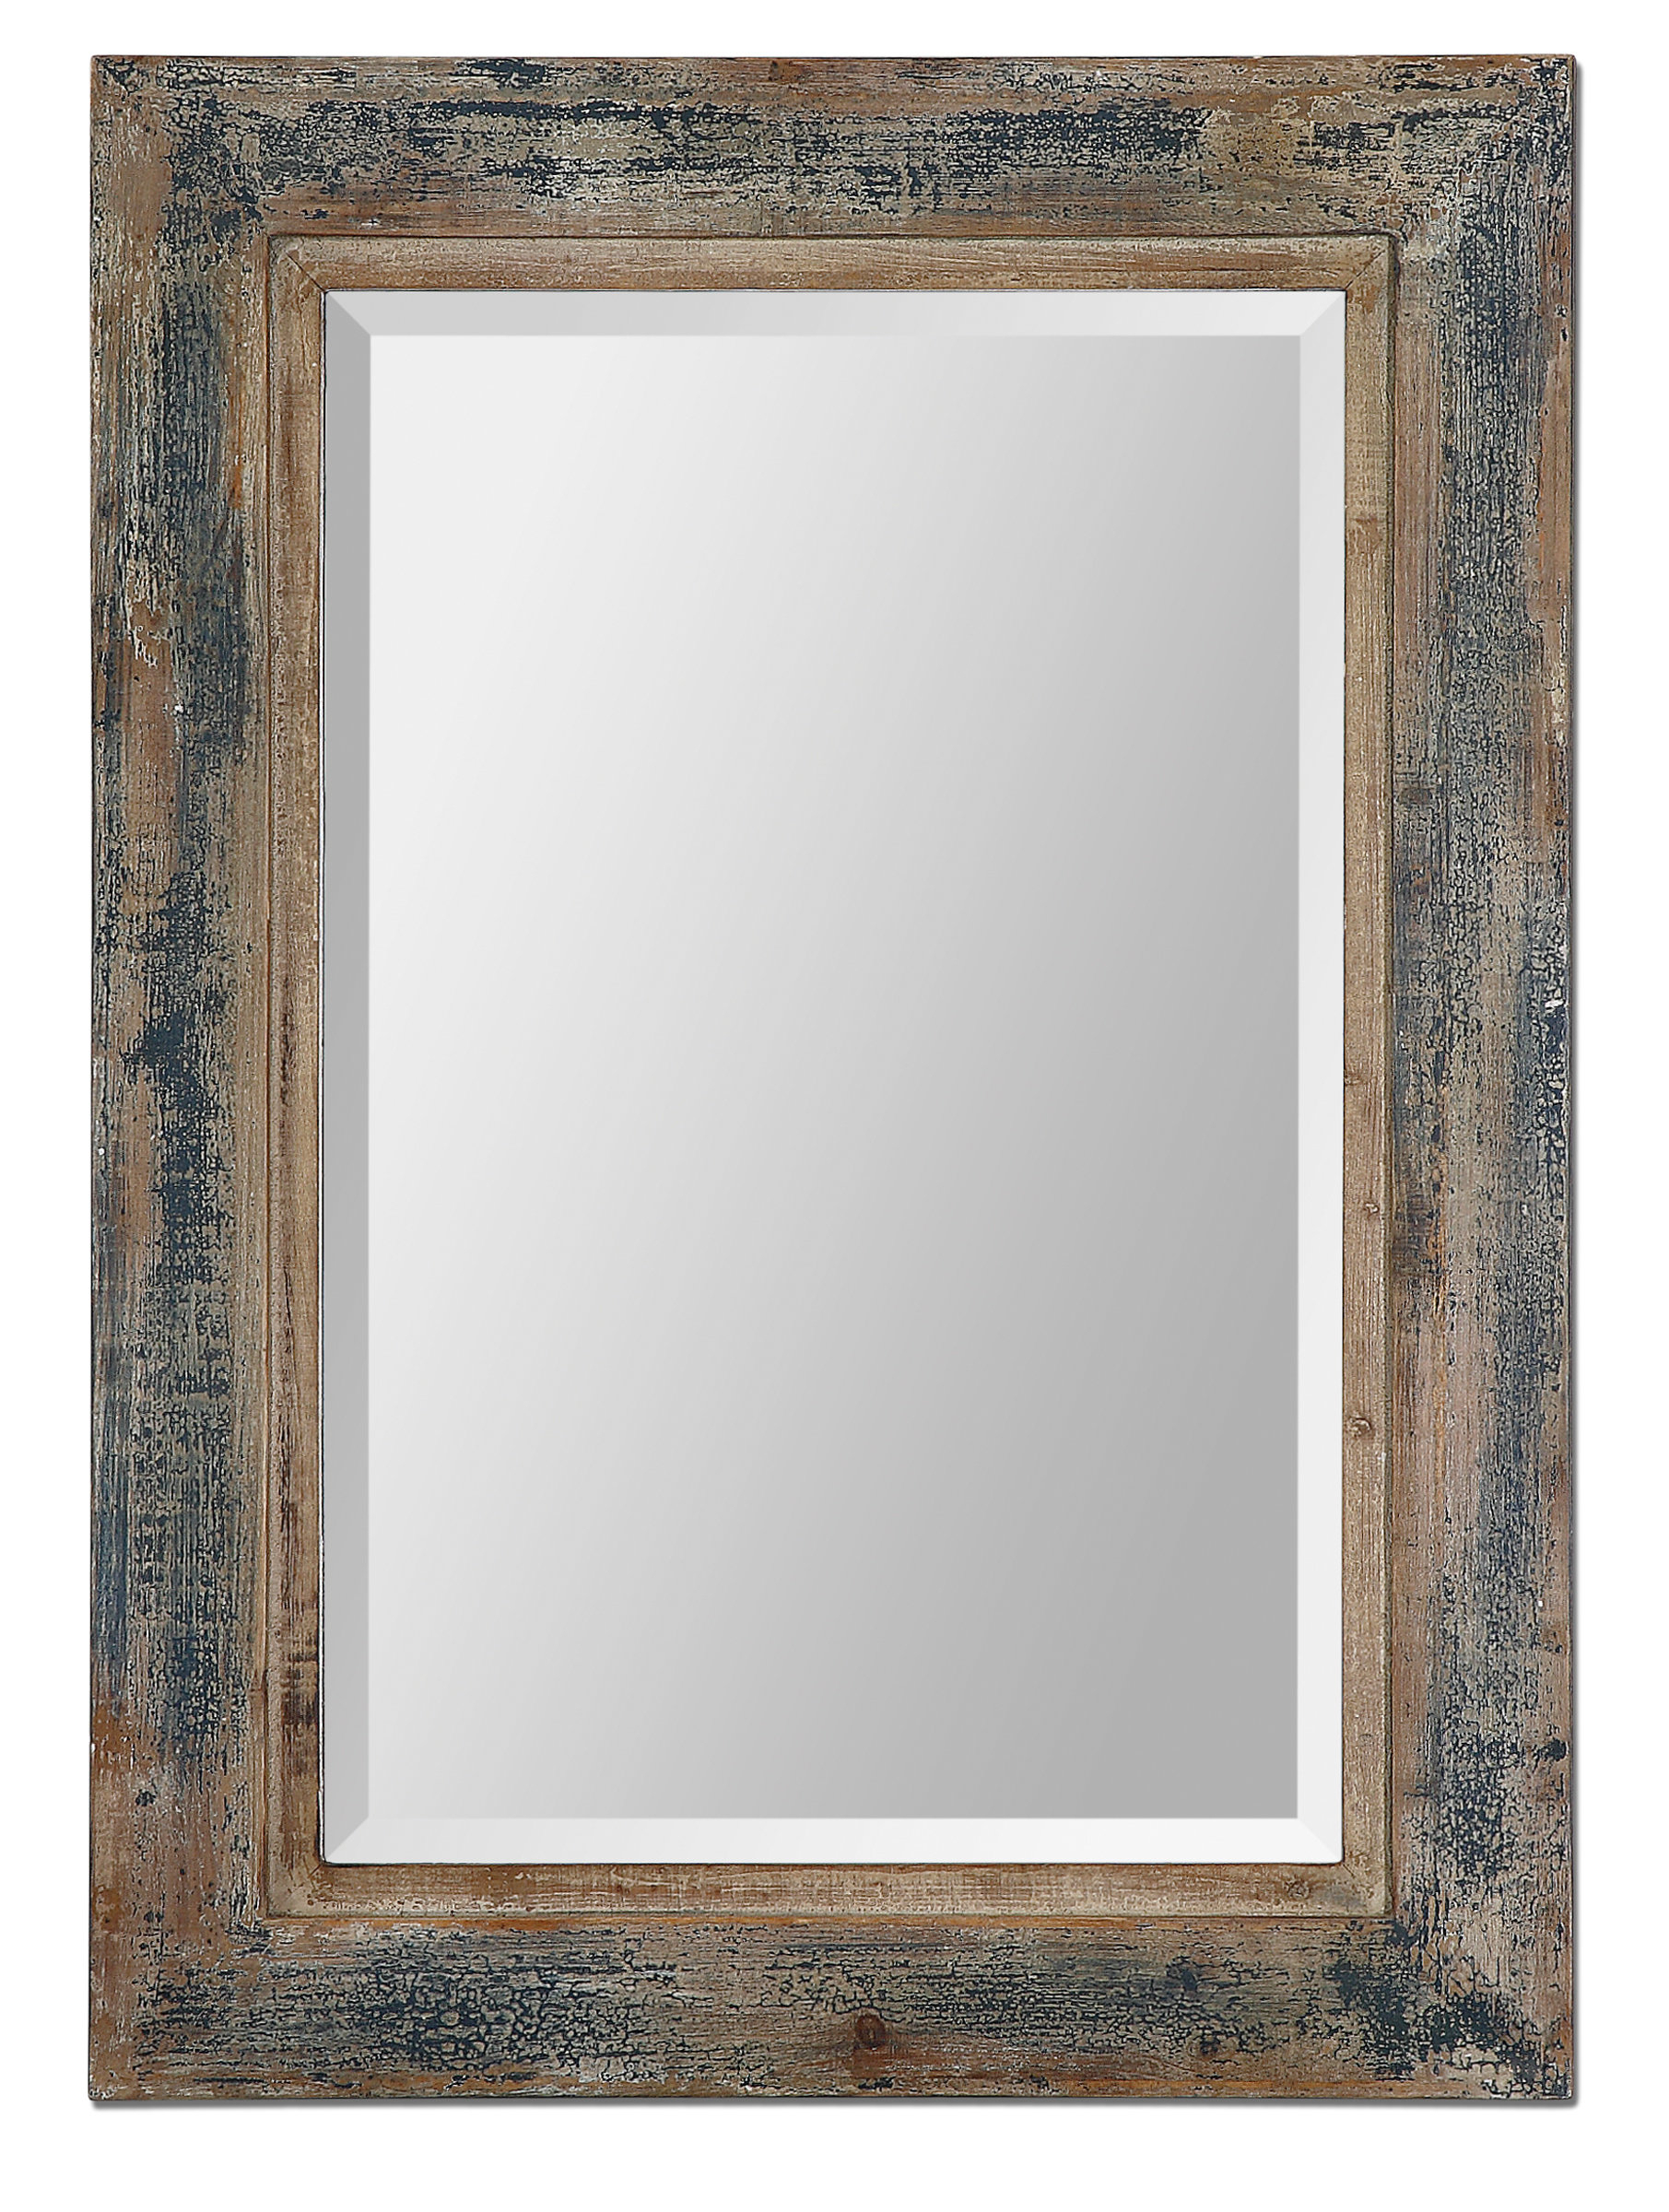 Modern & Contemporary Rattan Rectangular Mirror | Allmodern intended for Pennsburg Rectangle Wall Mirrors (Image 12 of 30)